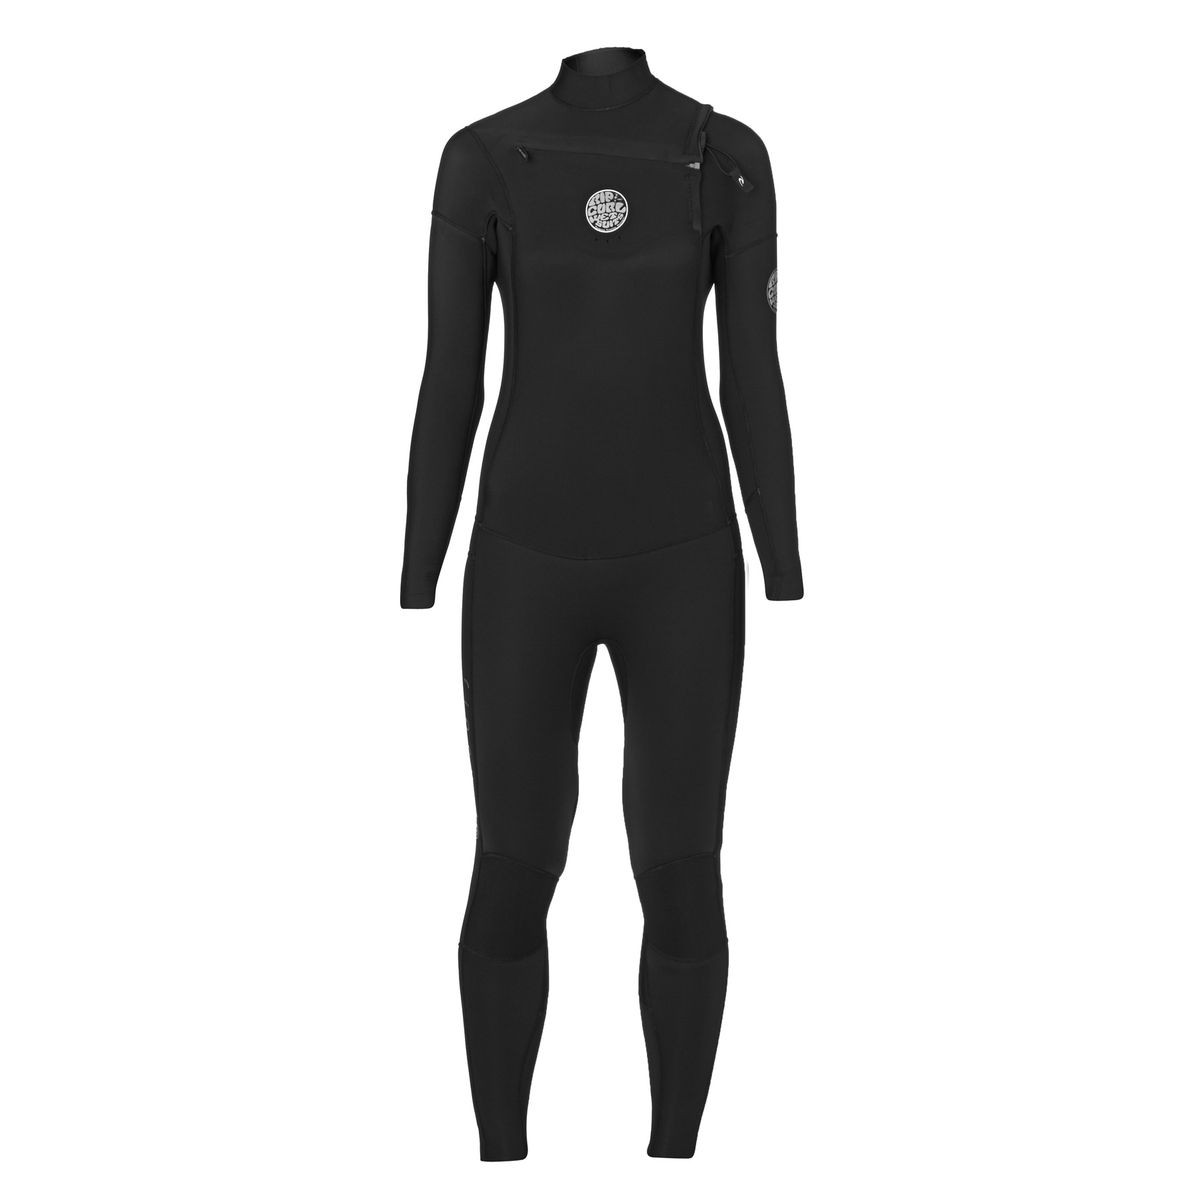 Rip Curl Womens Dawn Patrol 4/3mm 2017 Chest Zip Wetsuit - Black